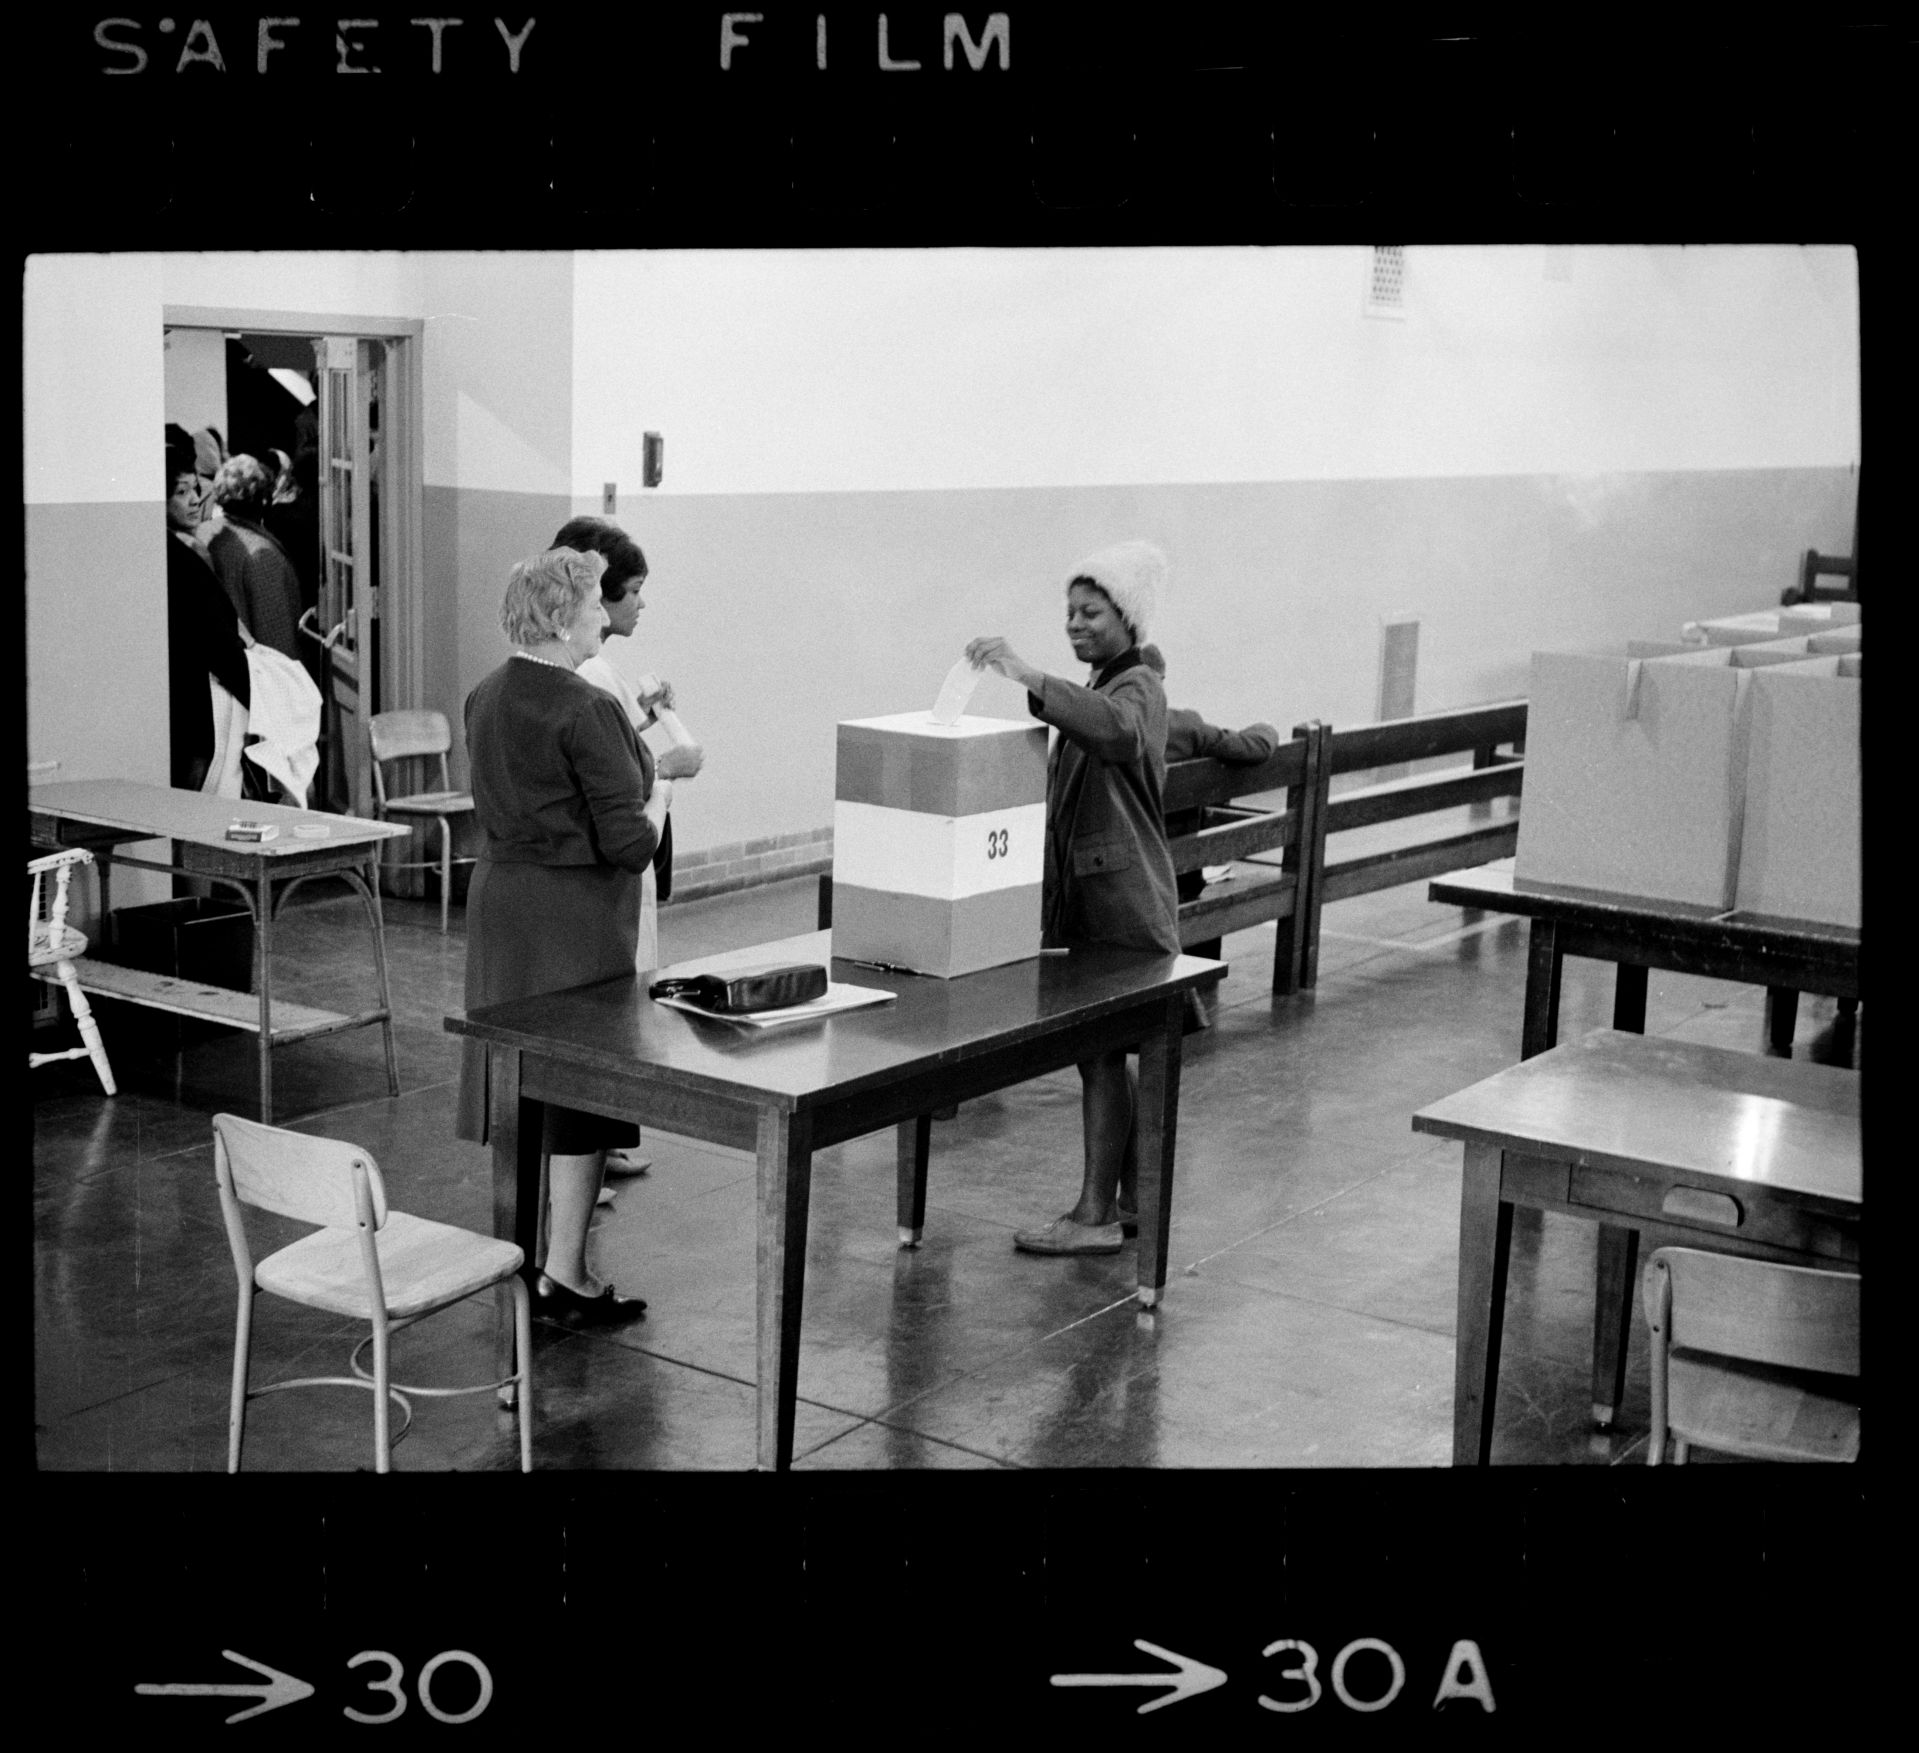 Negro voting in Cardoza [i.e., Cardozo] High School in [Washington,] D.C. / [MST].SummaryPhotograph showing a young African American woman casting her ballot.Trikosko, Marion S, photographer. Negro voting in Cardoza i.e., Cardozo High School in Washington, D.C. / MST. Washington D.C, 1964. Nov. 3. Photograph. https://www.loc.gov/item/2003688167/.